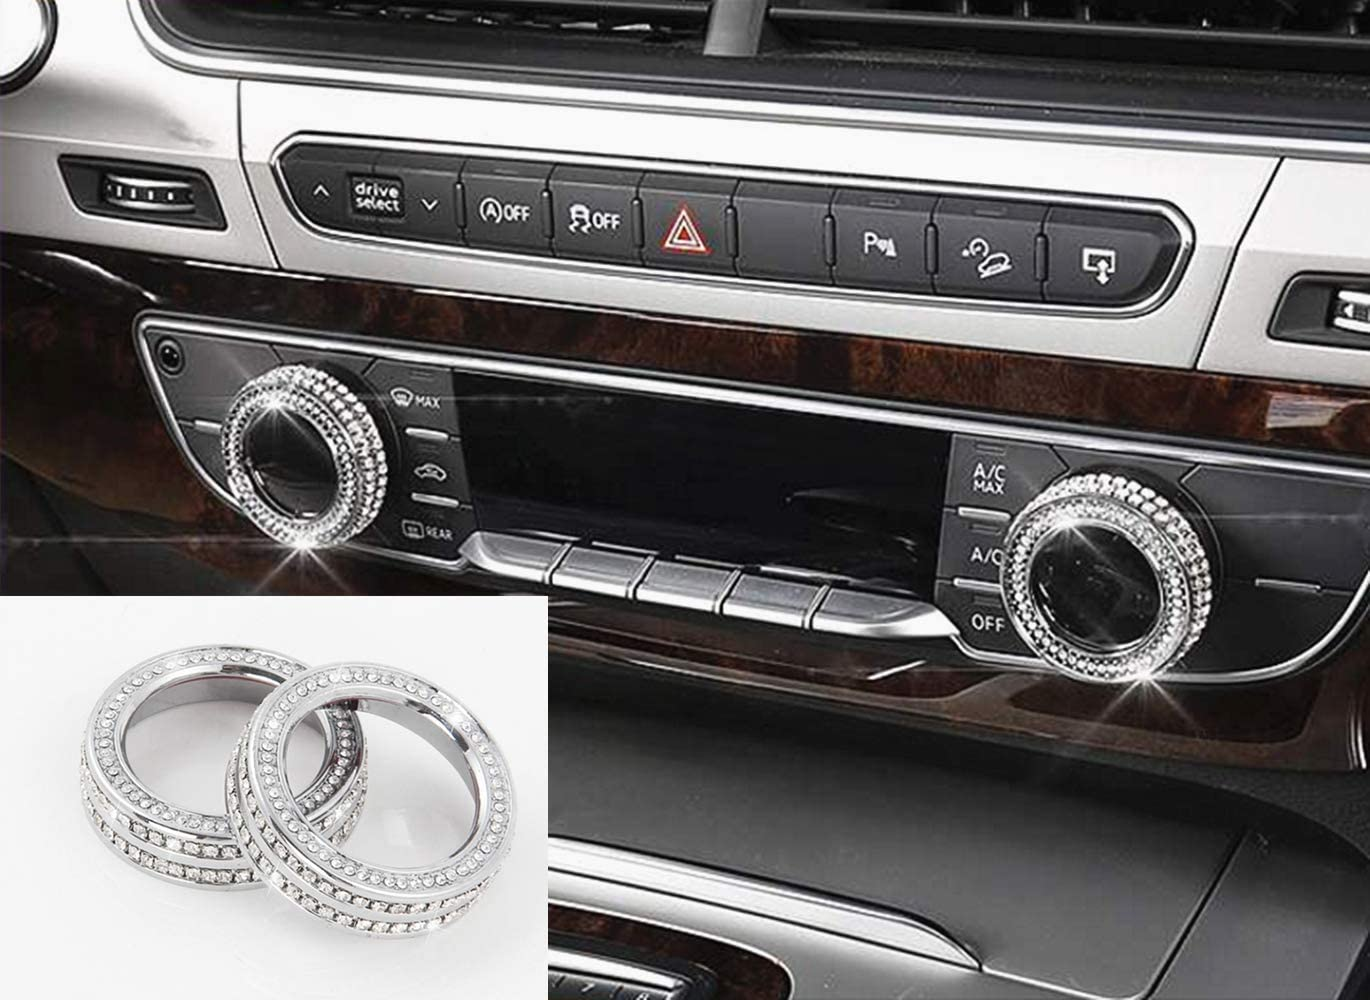 HAILWH Fit Audi Q7 2016-2019 Crystal Rhinestone Bling Accessories Multimedia Central Control AC Rearview Mirror Control Knob Applique Cover Decorative Ring Central Control knob Cover